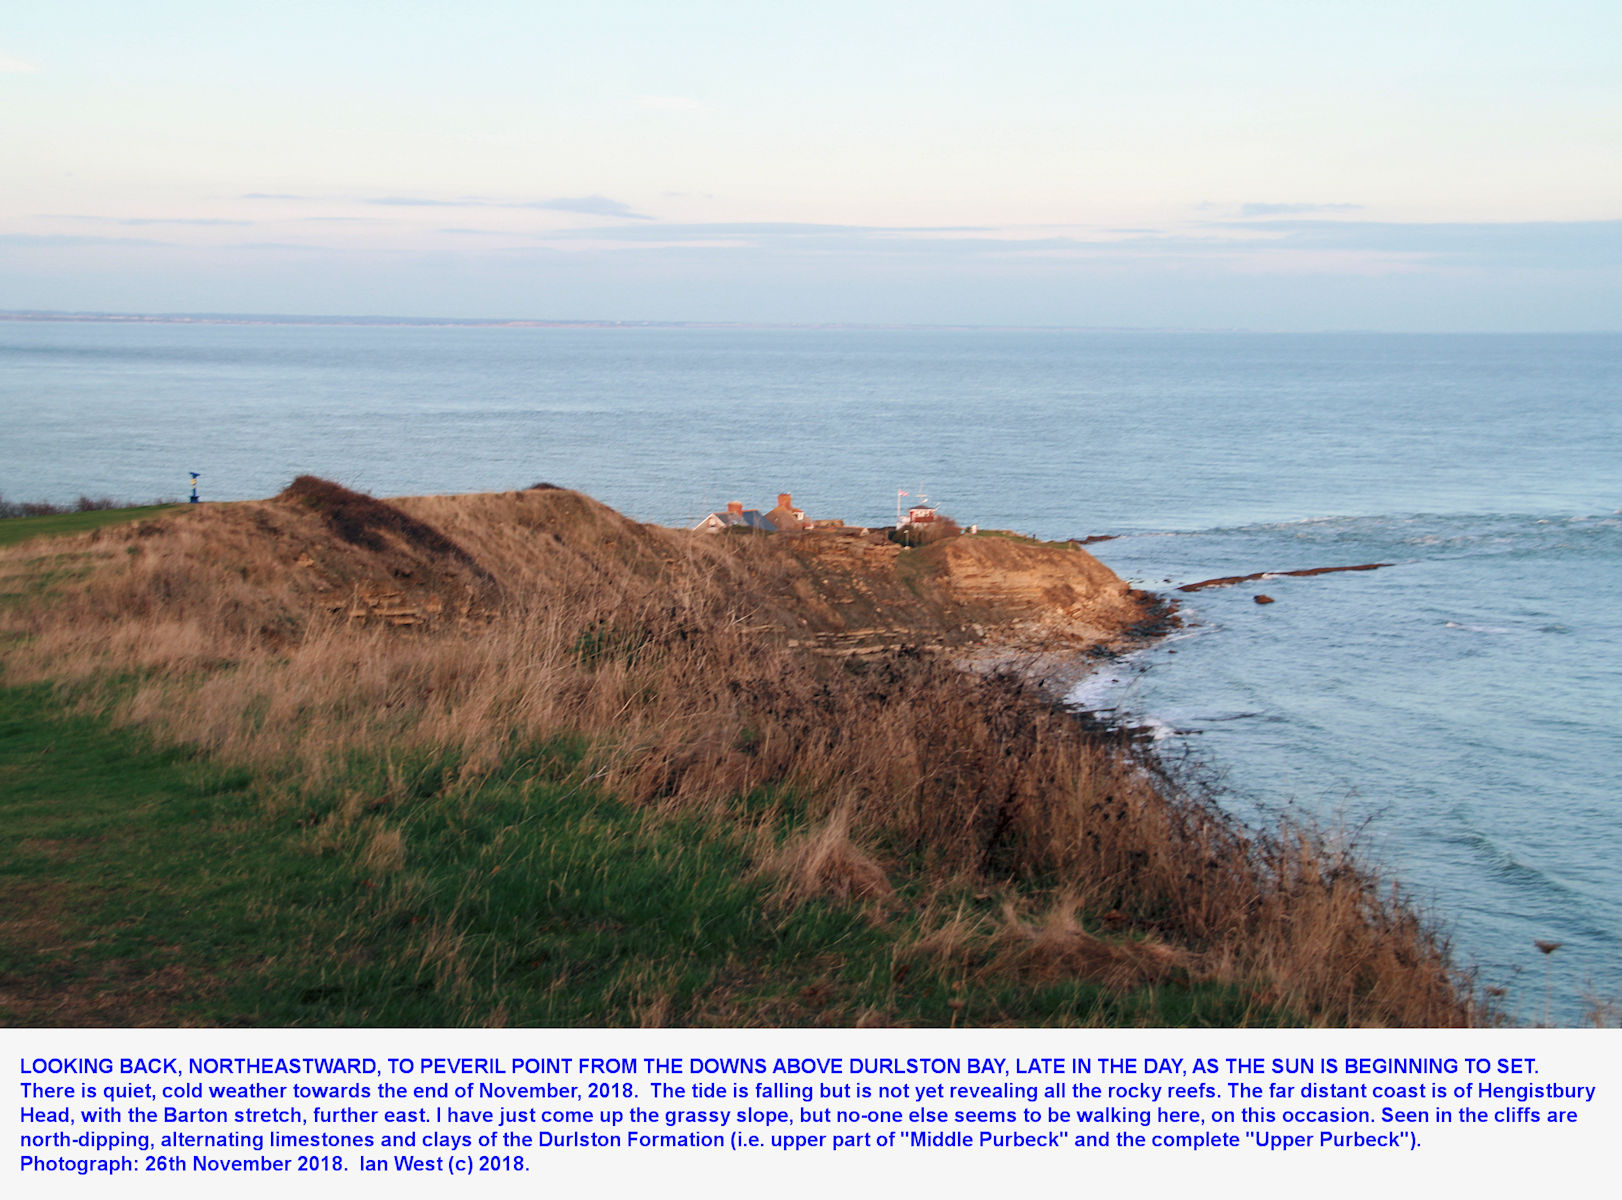 Looking down from the higher cliff top on the Downs towards  the Peveril Point promontory, at sunset, 26th November 2018